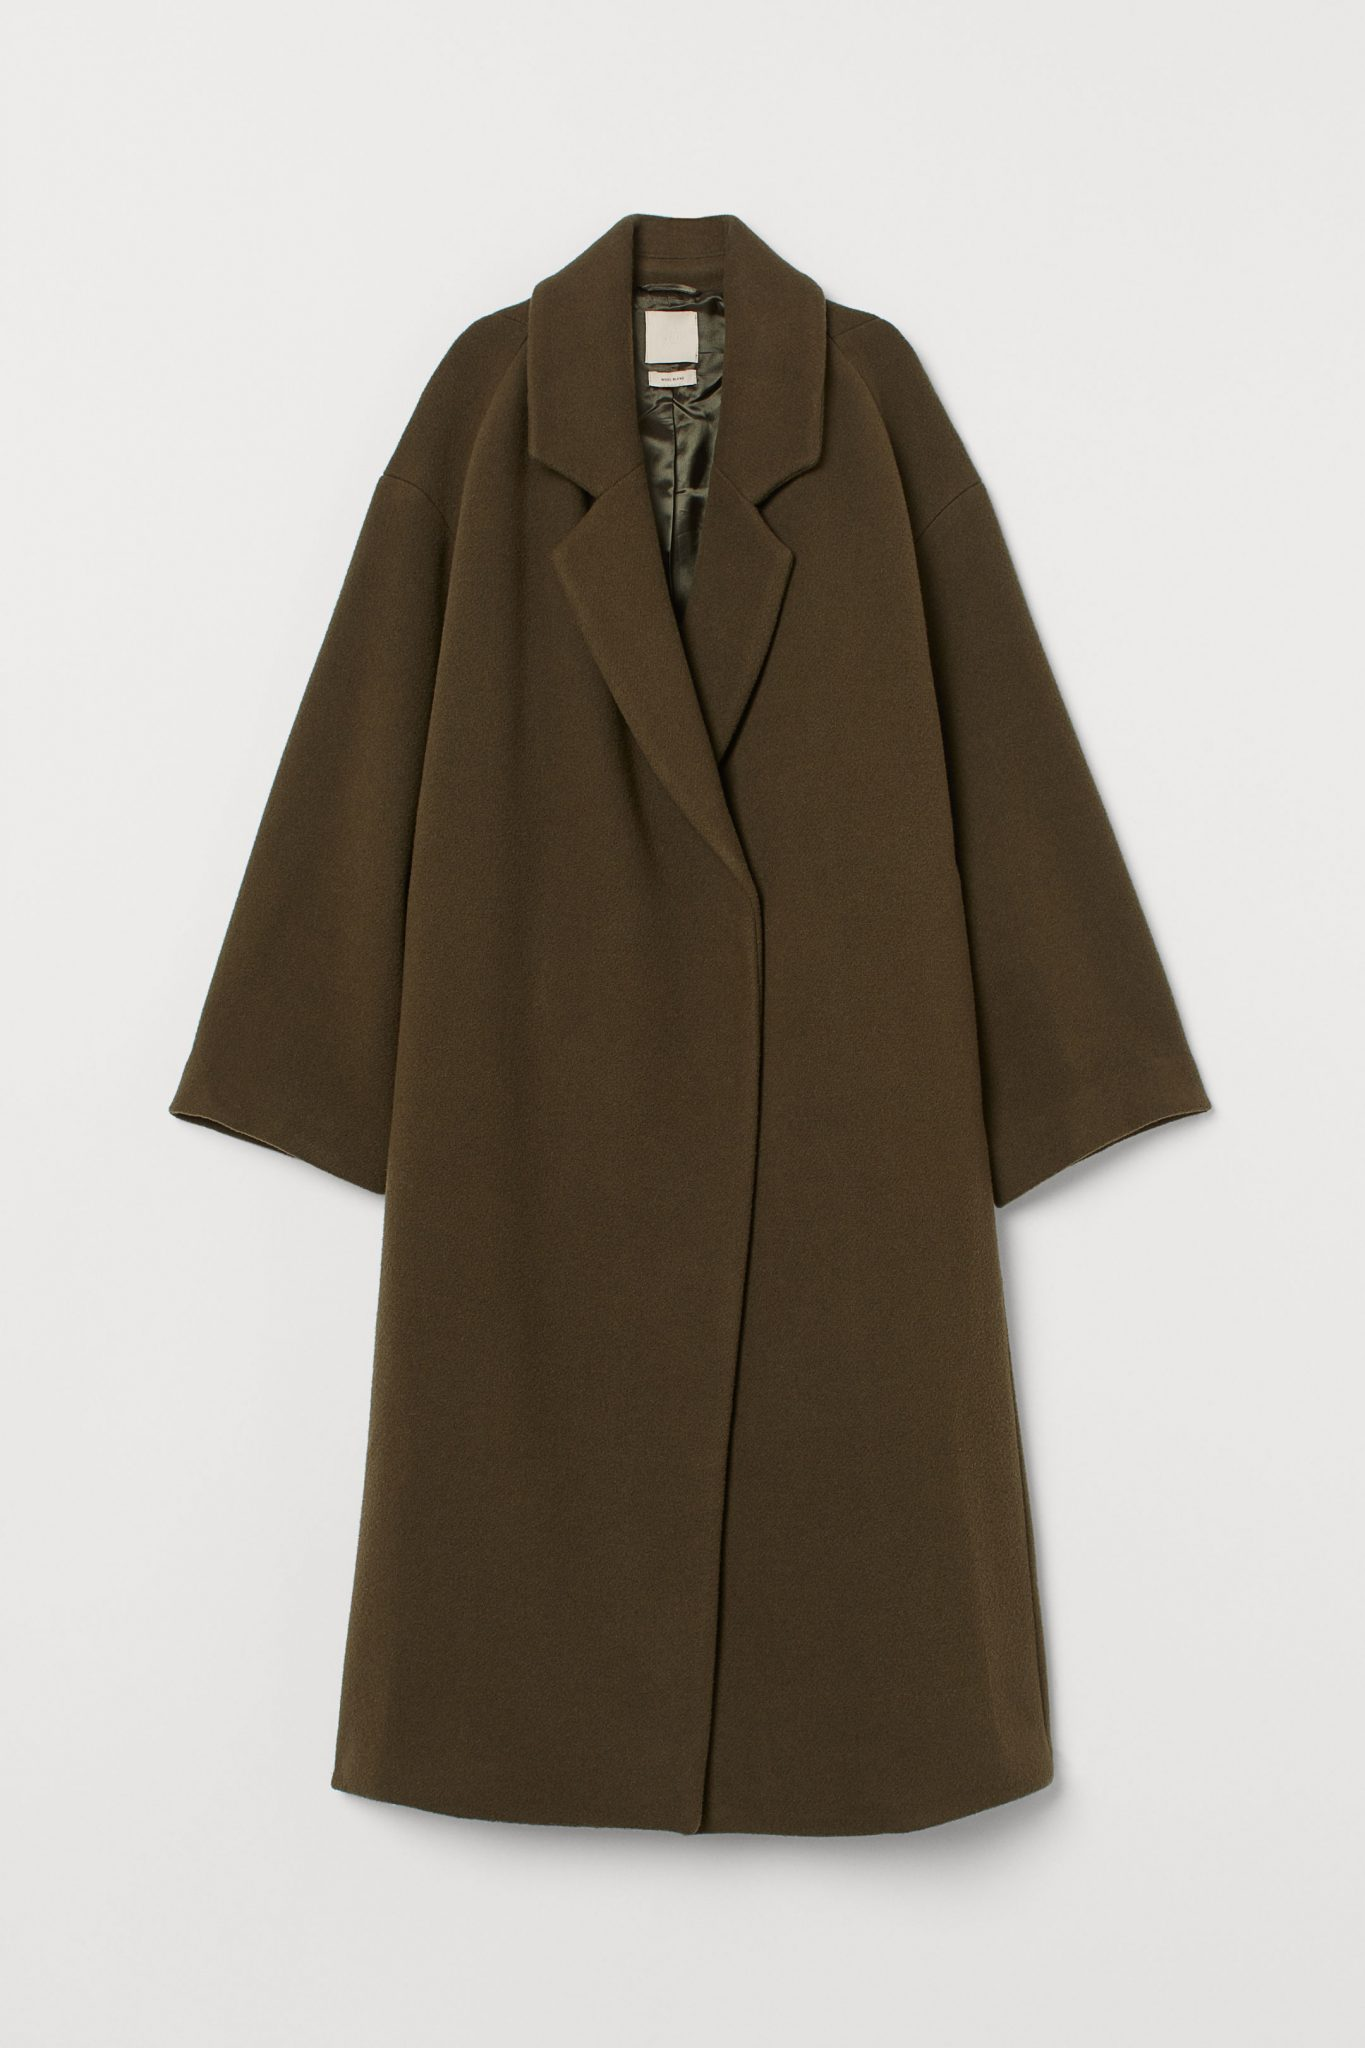 Topshop Funnel Relax Fit Military Belt Long Beige Trench Mac Over Coat  6 8 10